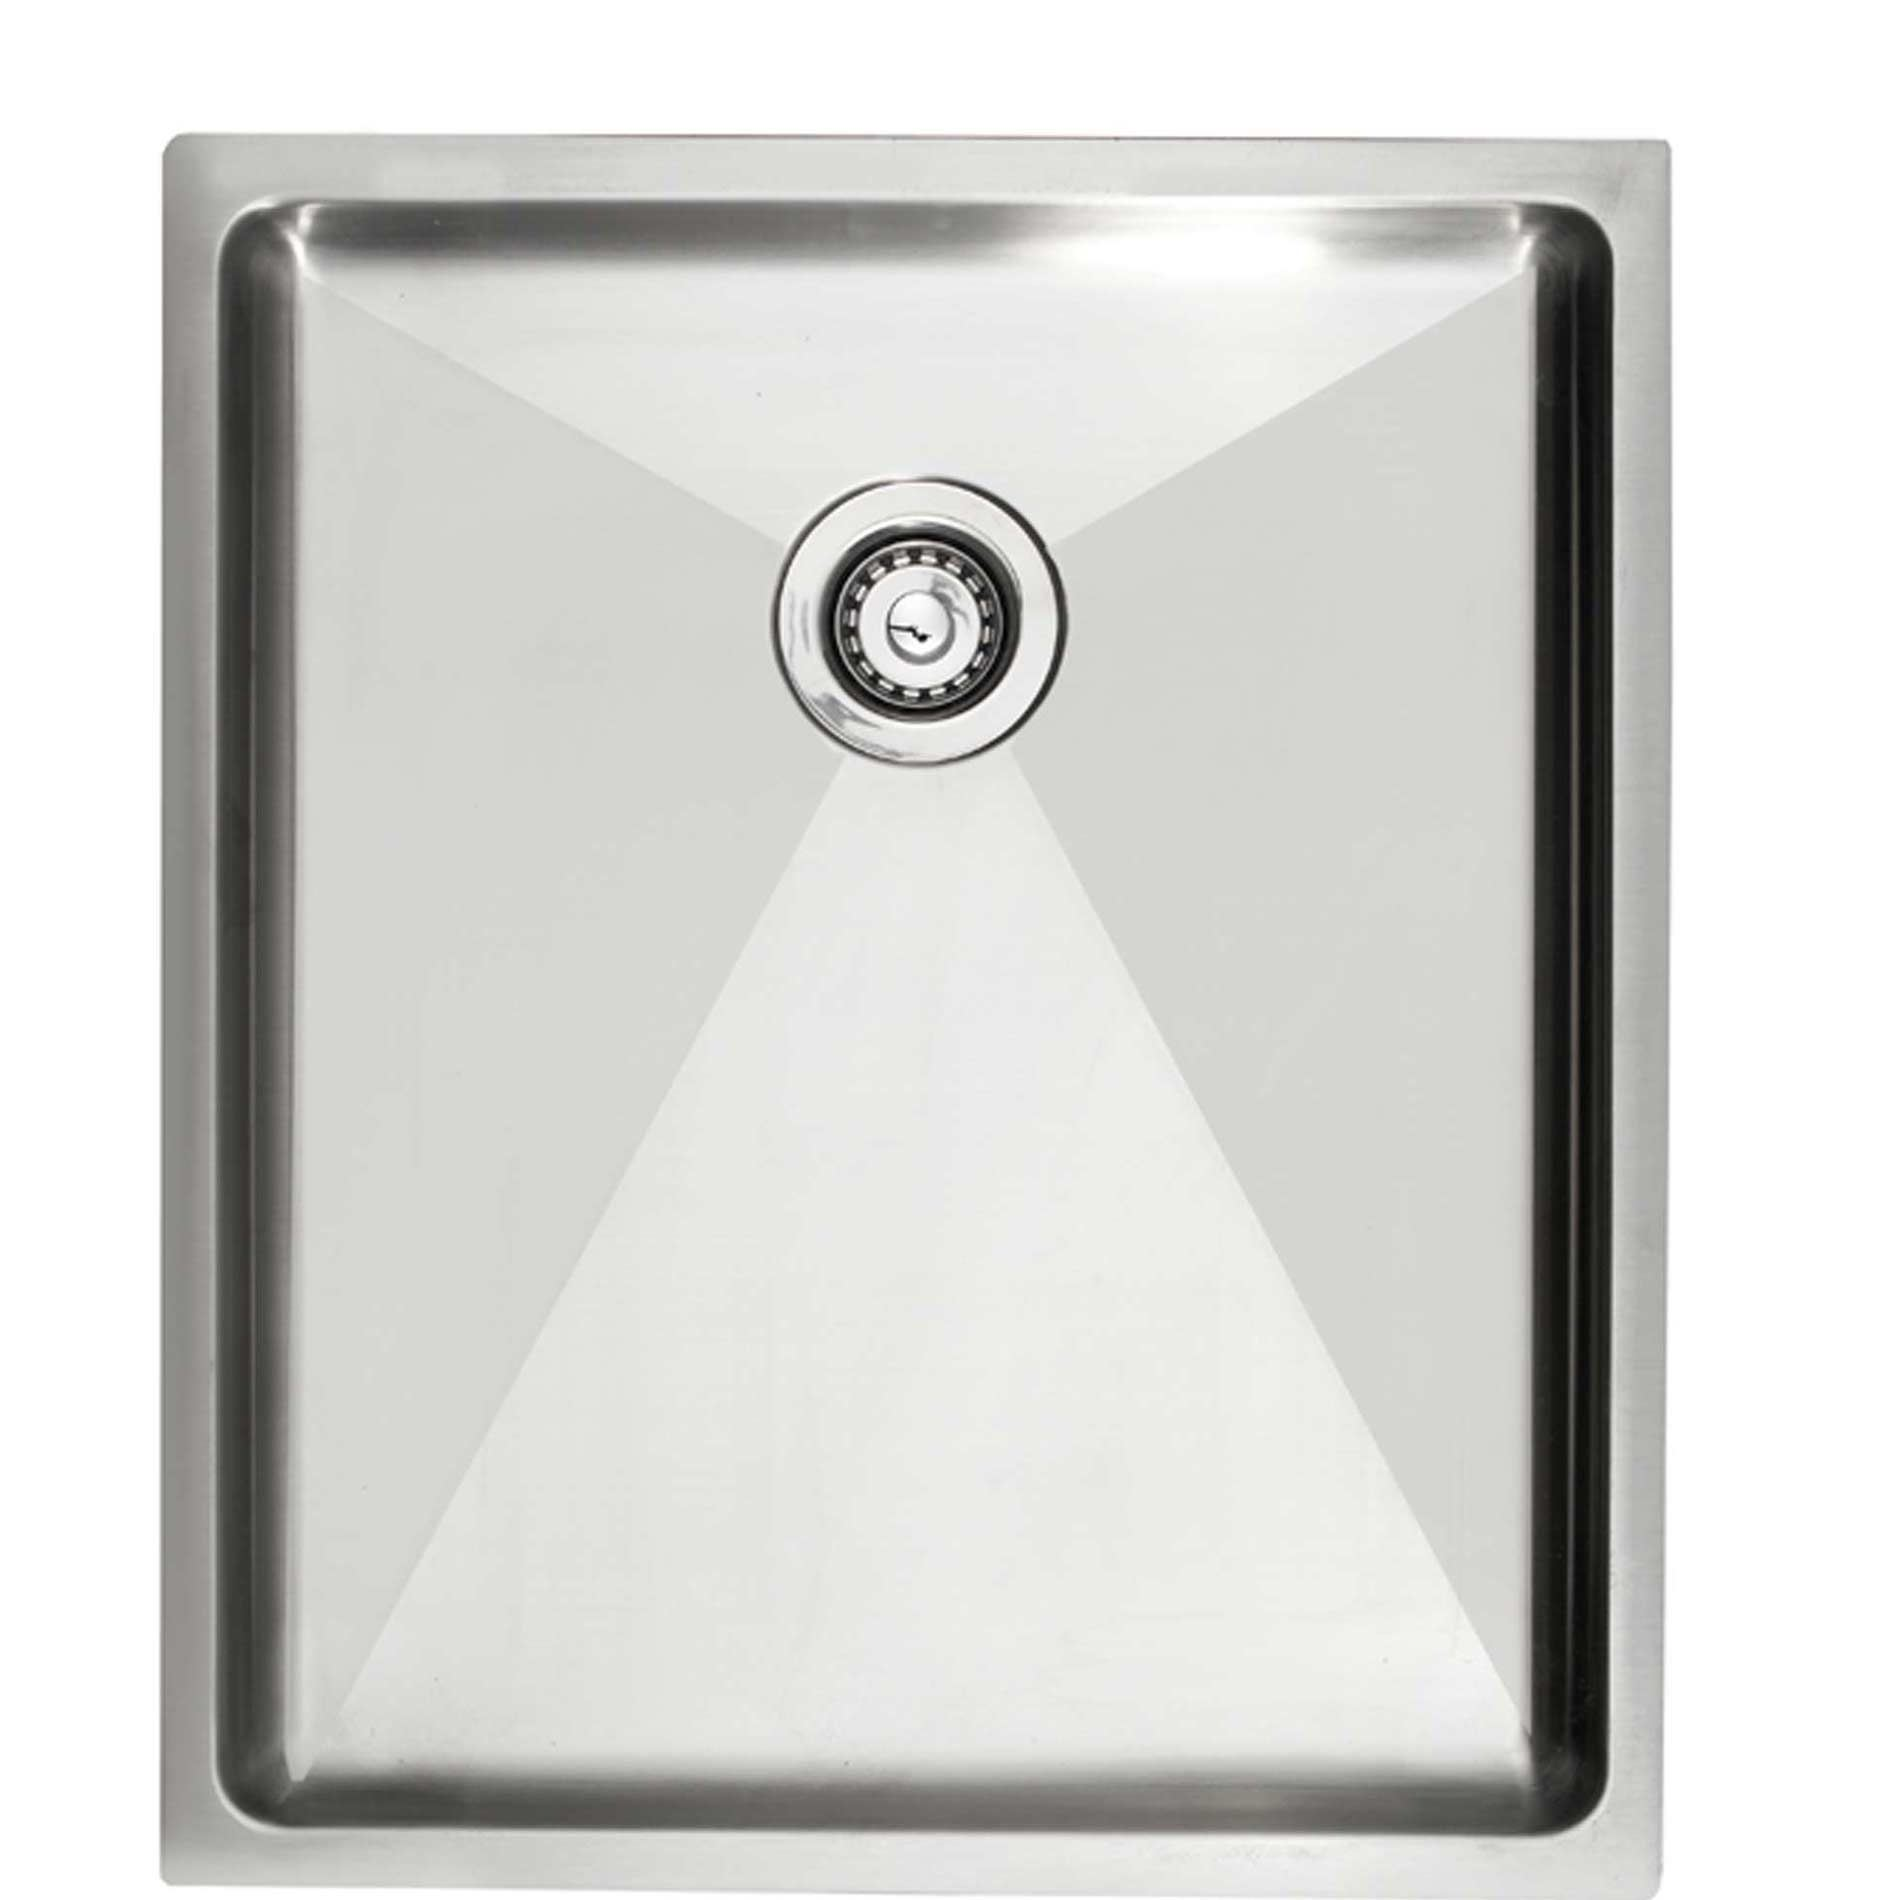 Sit On Kitchen Sink Part - 35: Picture Of Onyx 4034 Stainless Steel Drainer